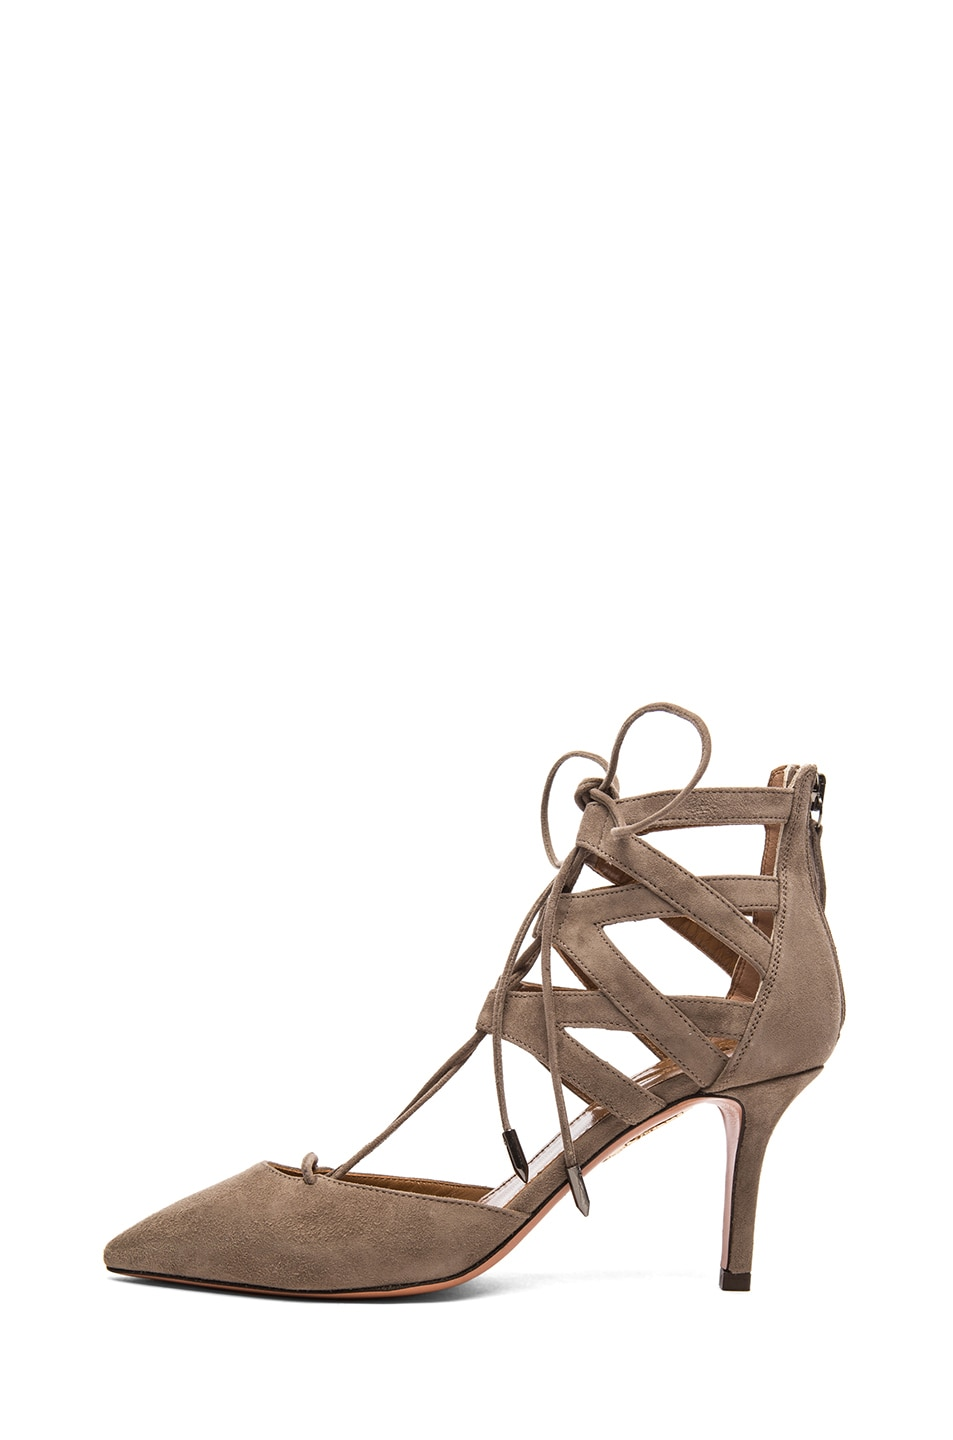 Image 1 of Aquazzura Belgravia Suede Lace Up Pumps in Taupe